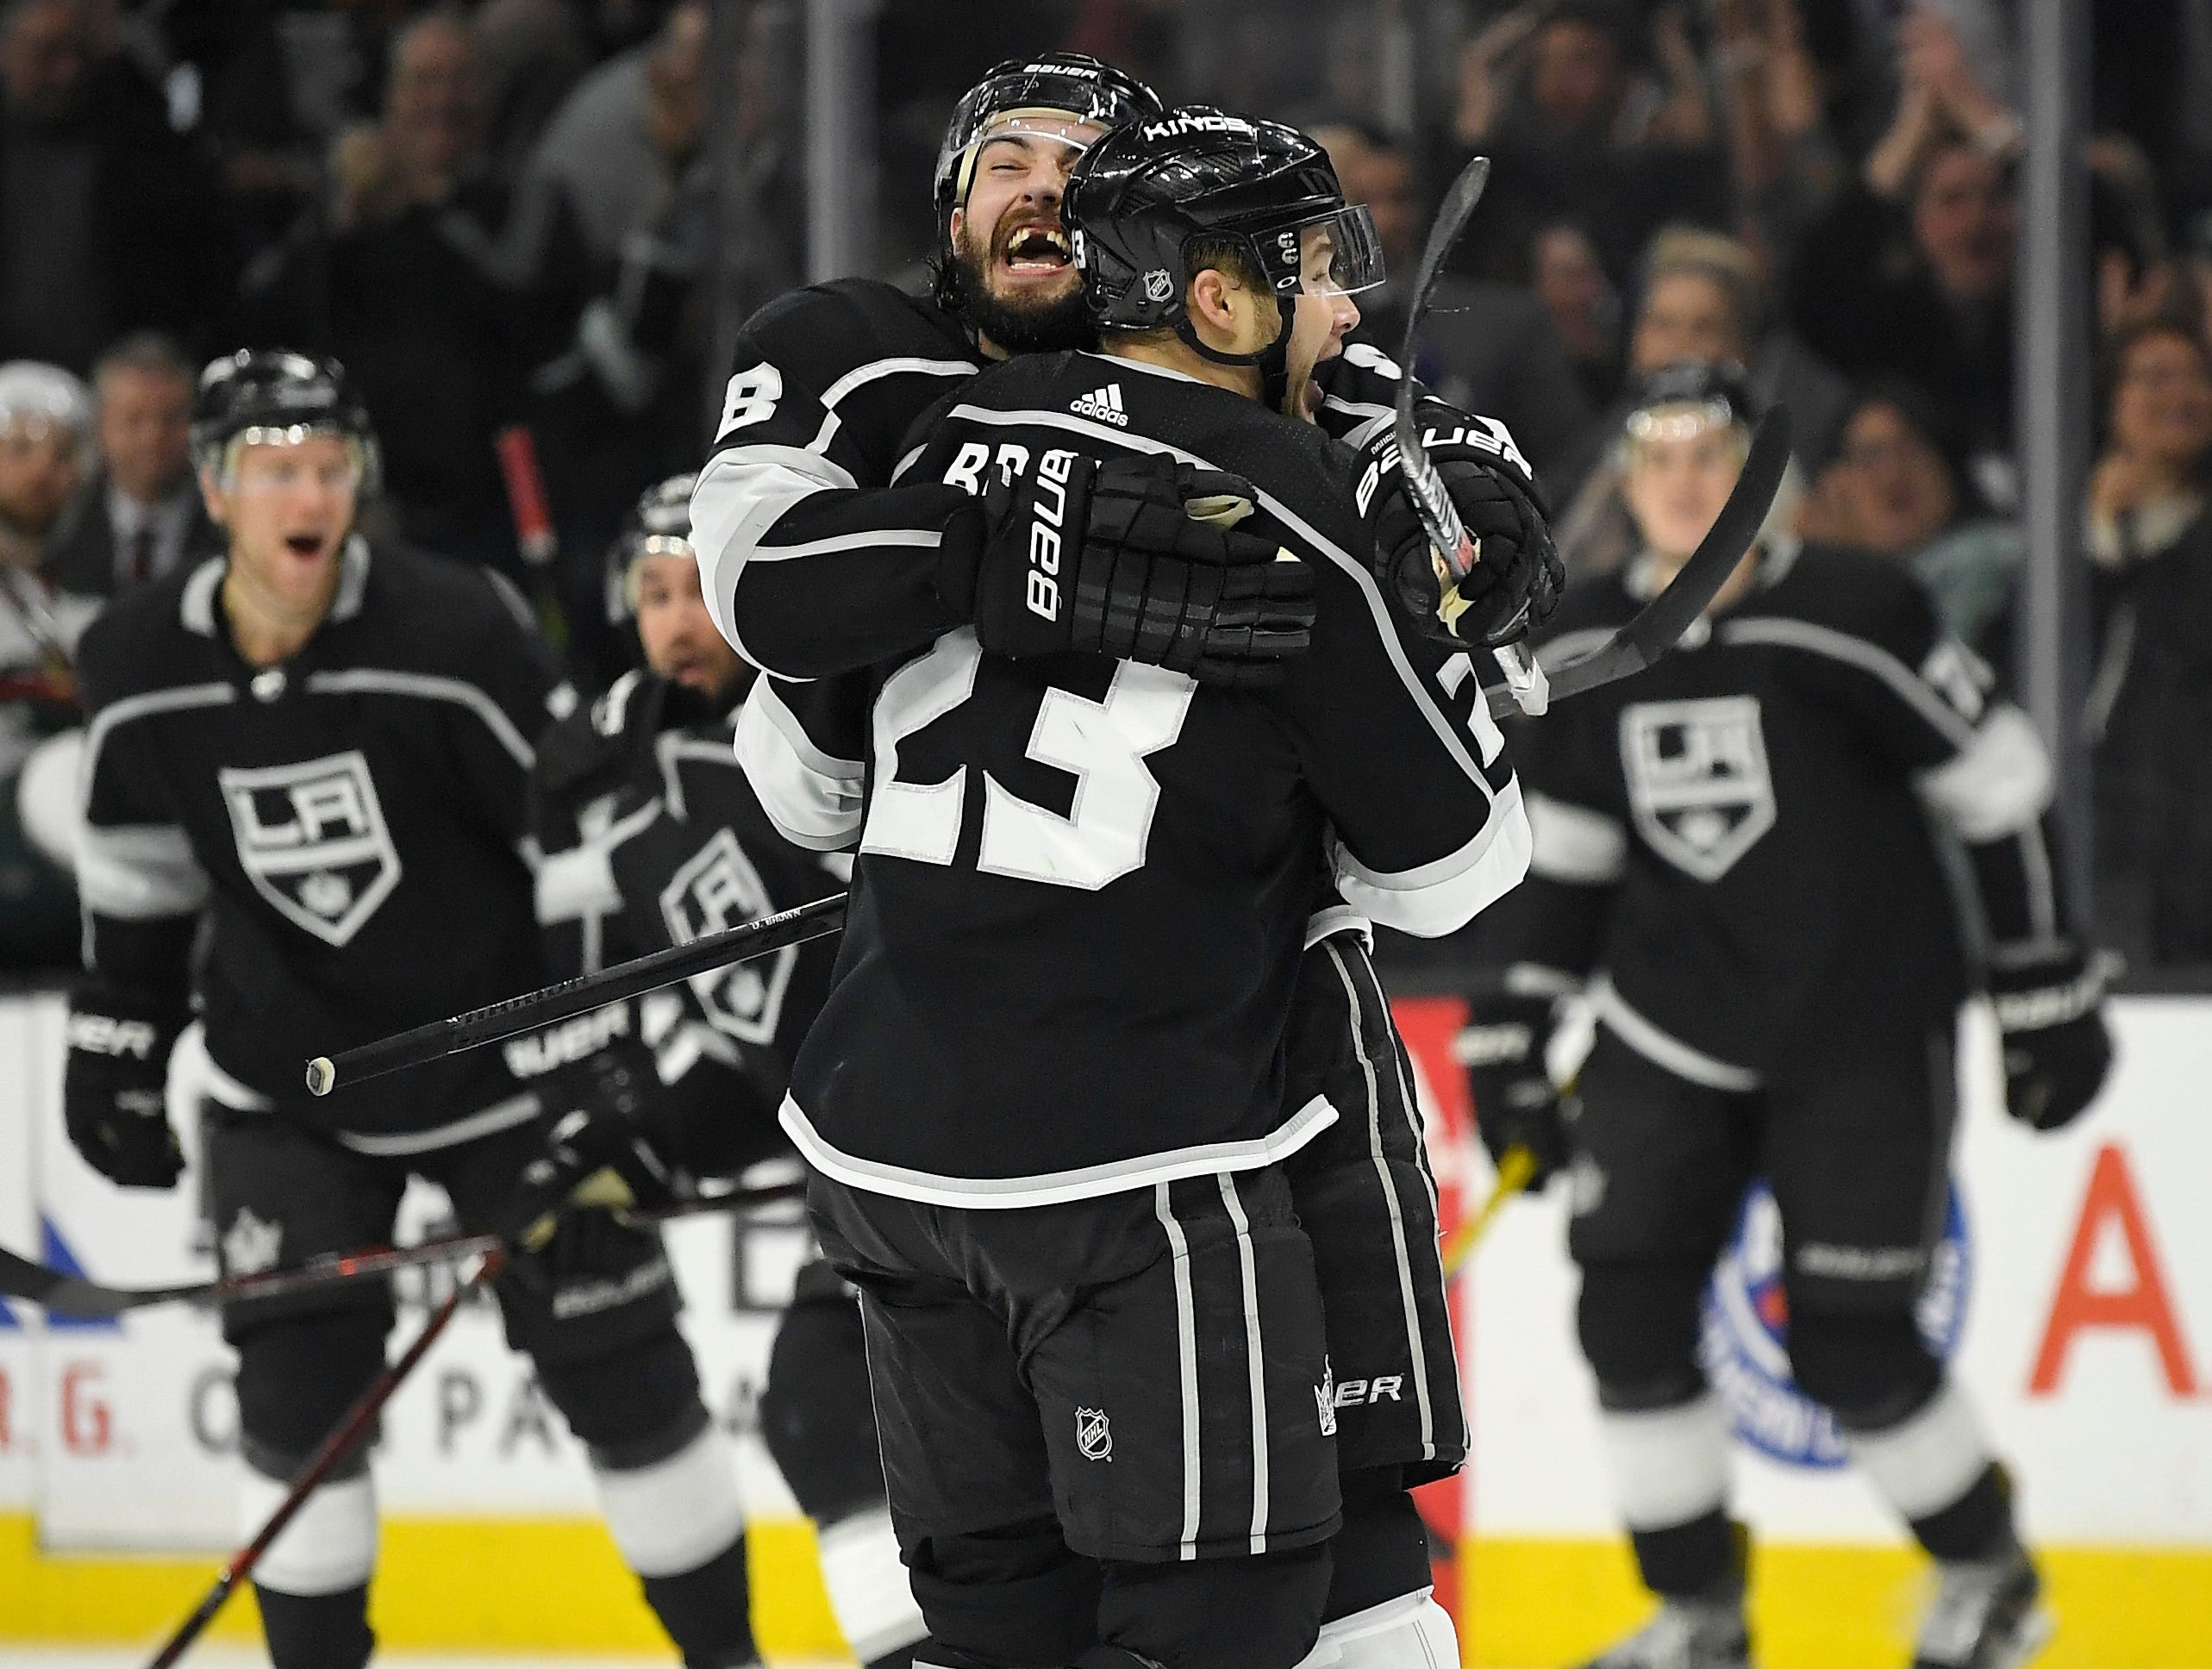 Los Angeles Kings right wing and Ithaca native Dustin Brown (23) celebrates his overtime goal with defenseman Drew Doughty in an NHL hockey game against the Minnesota Wild on Thursday, April 5, 2018, in Los Angeles. The Kings won 5-4.